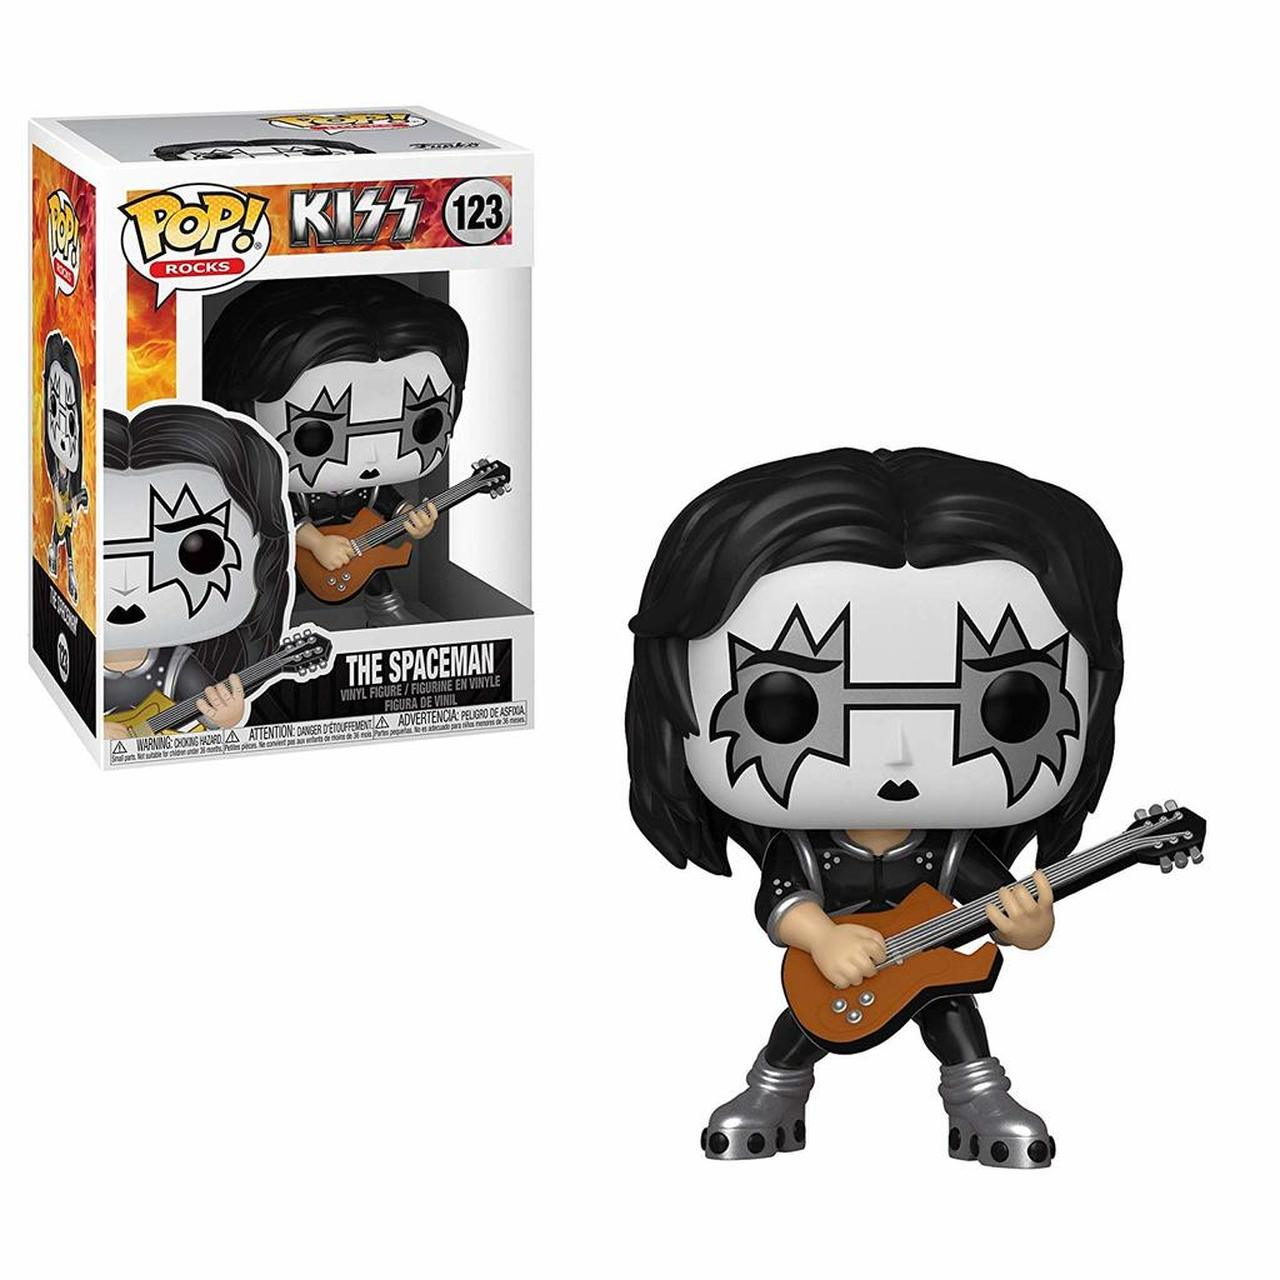 Kiss Rock Band The Spaceman Music Pop Vinyl Figure Toy